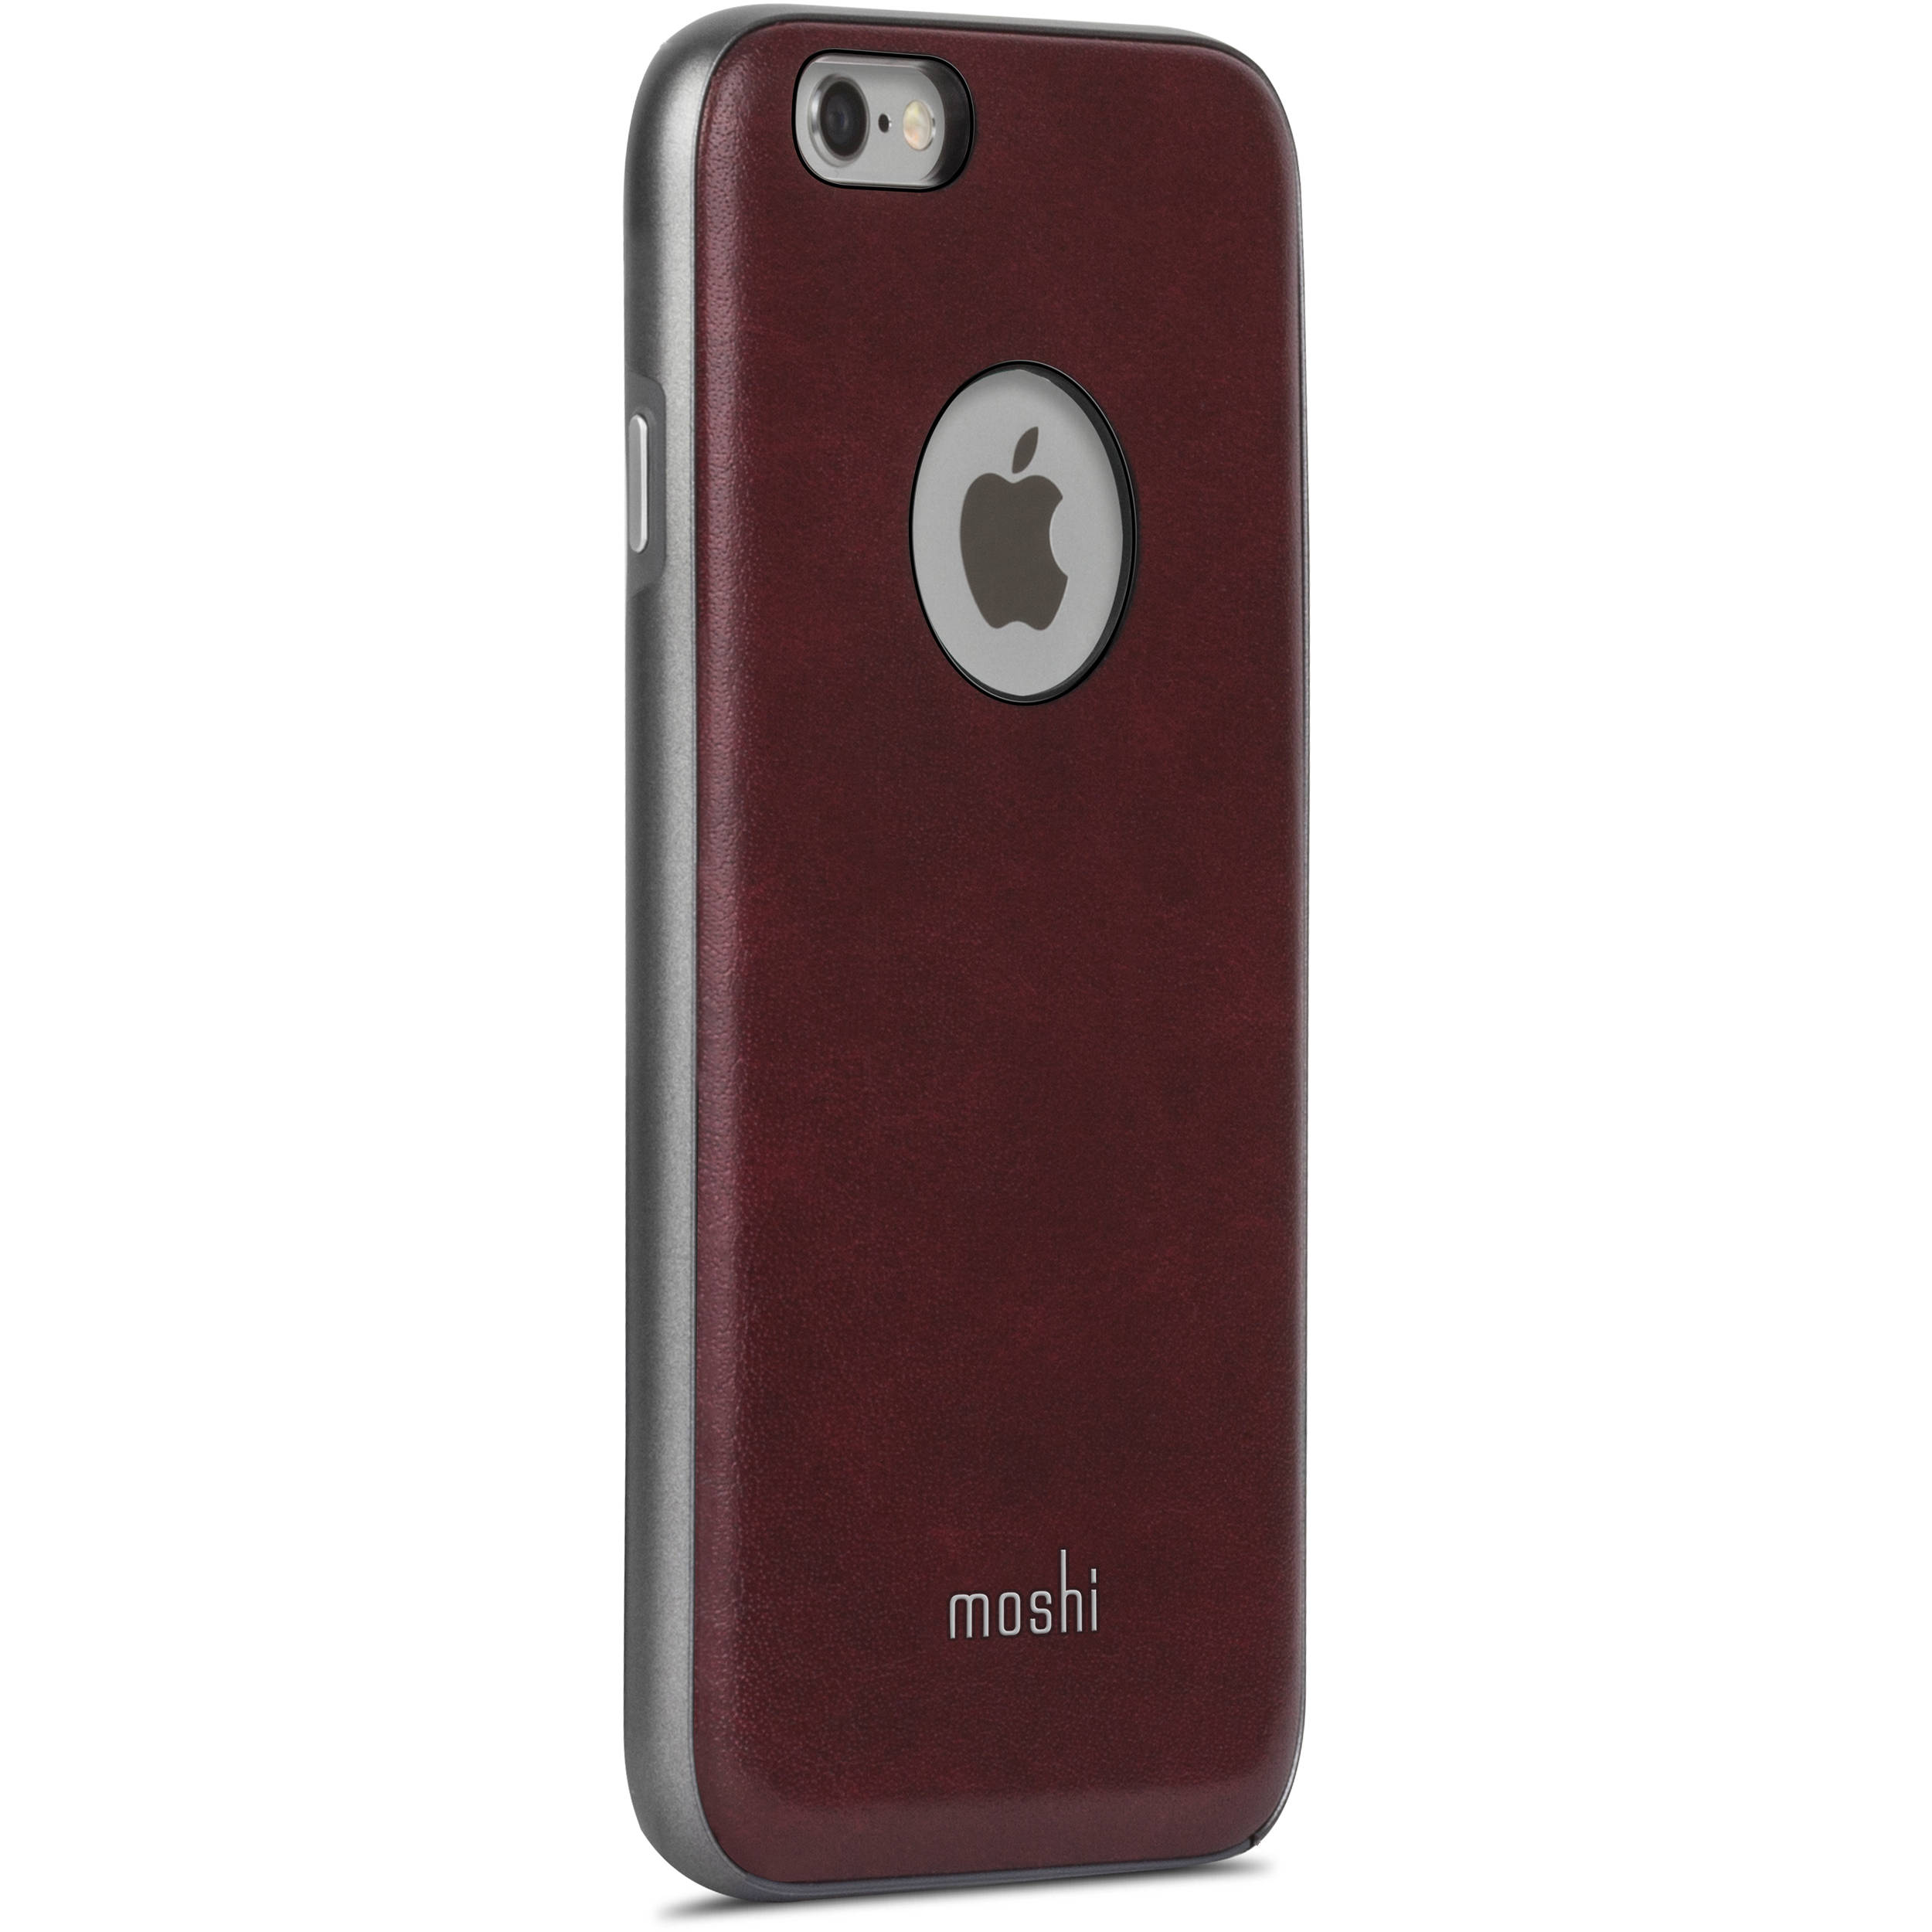 moshi napa case for iphone 6 6s burgundy red 99mo079321 b h. Black Bedroom Furniture Sets. Home Design Ideas